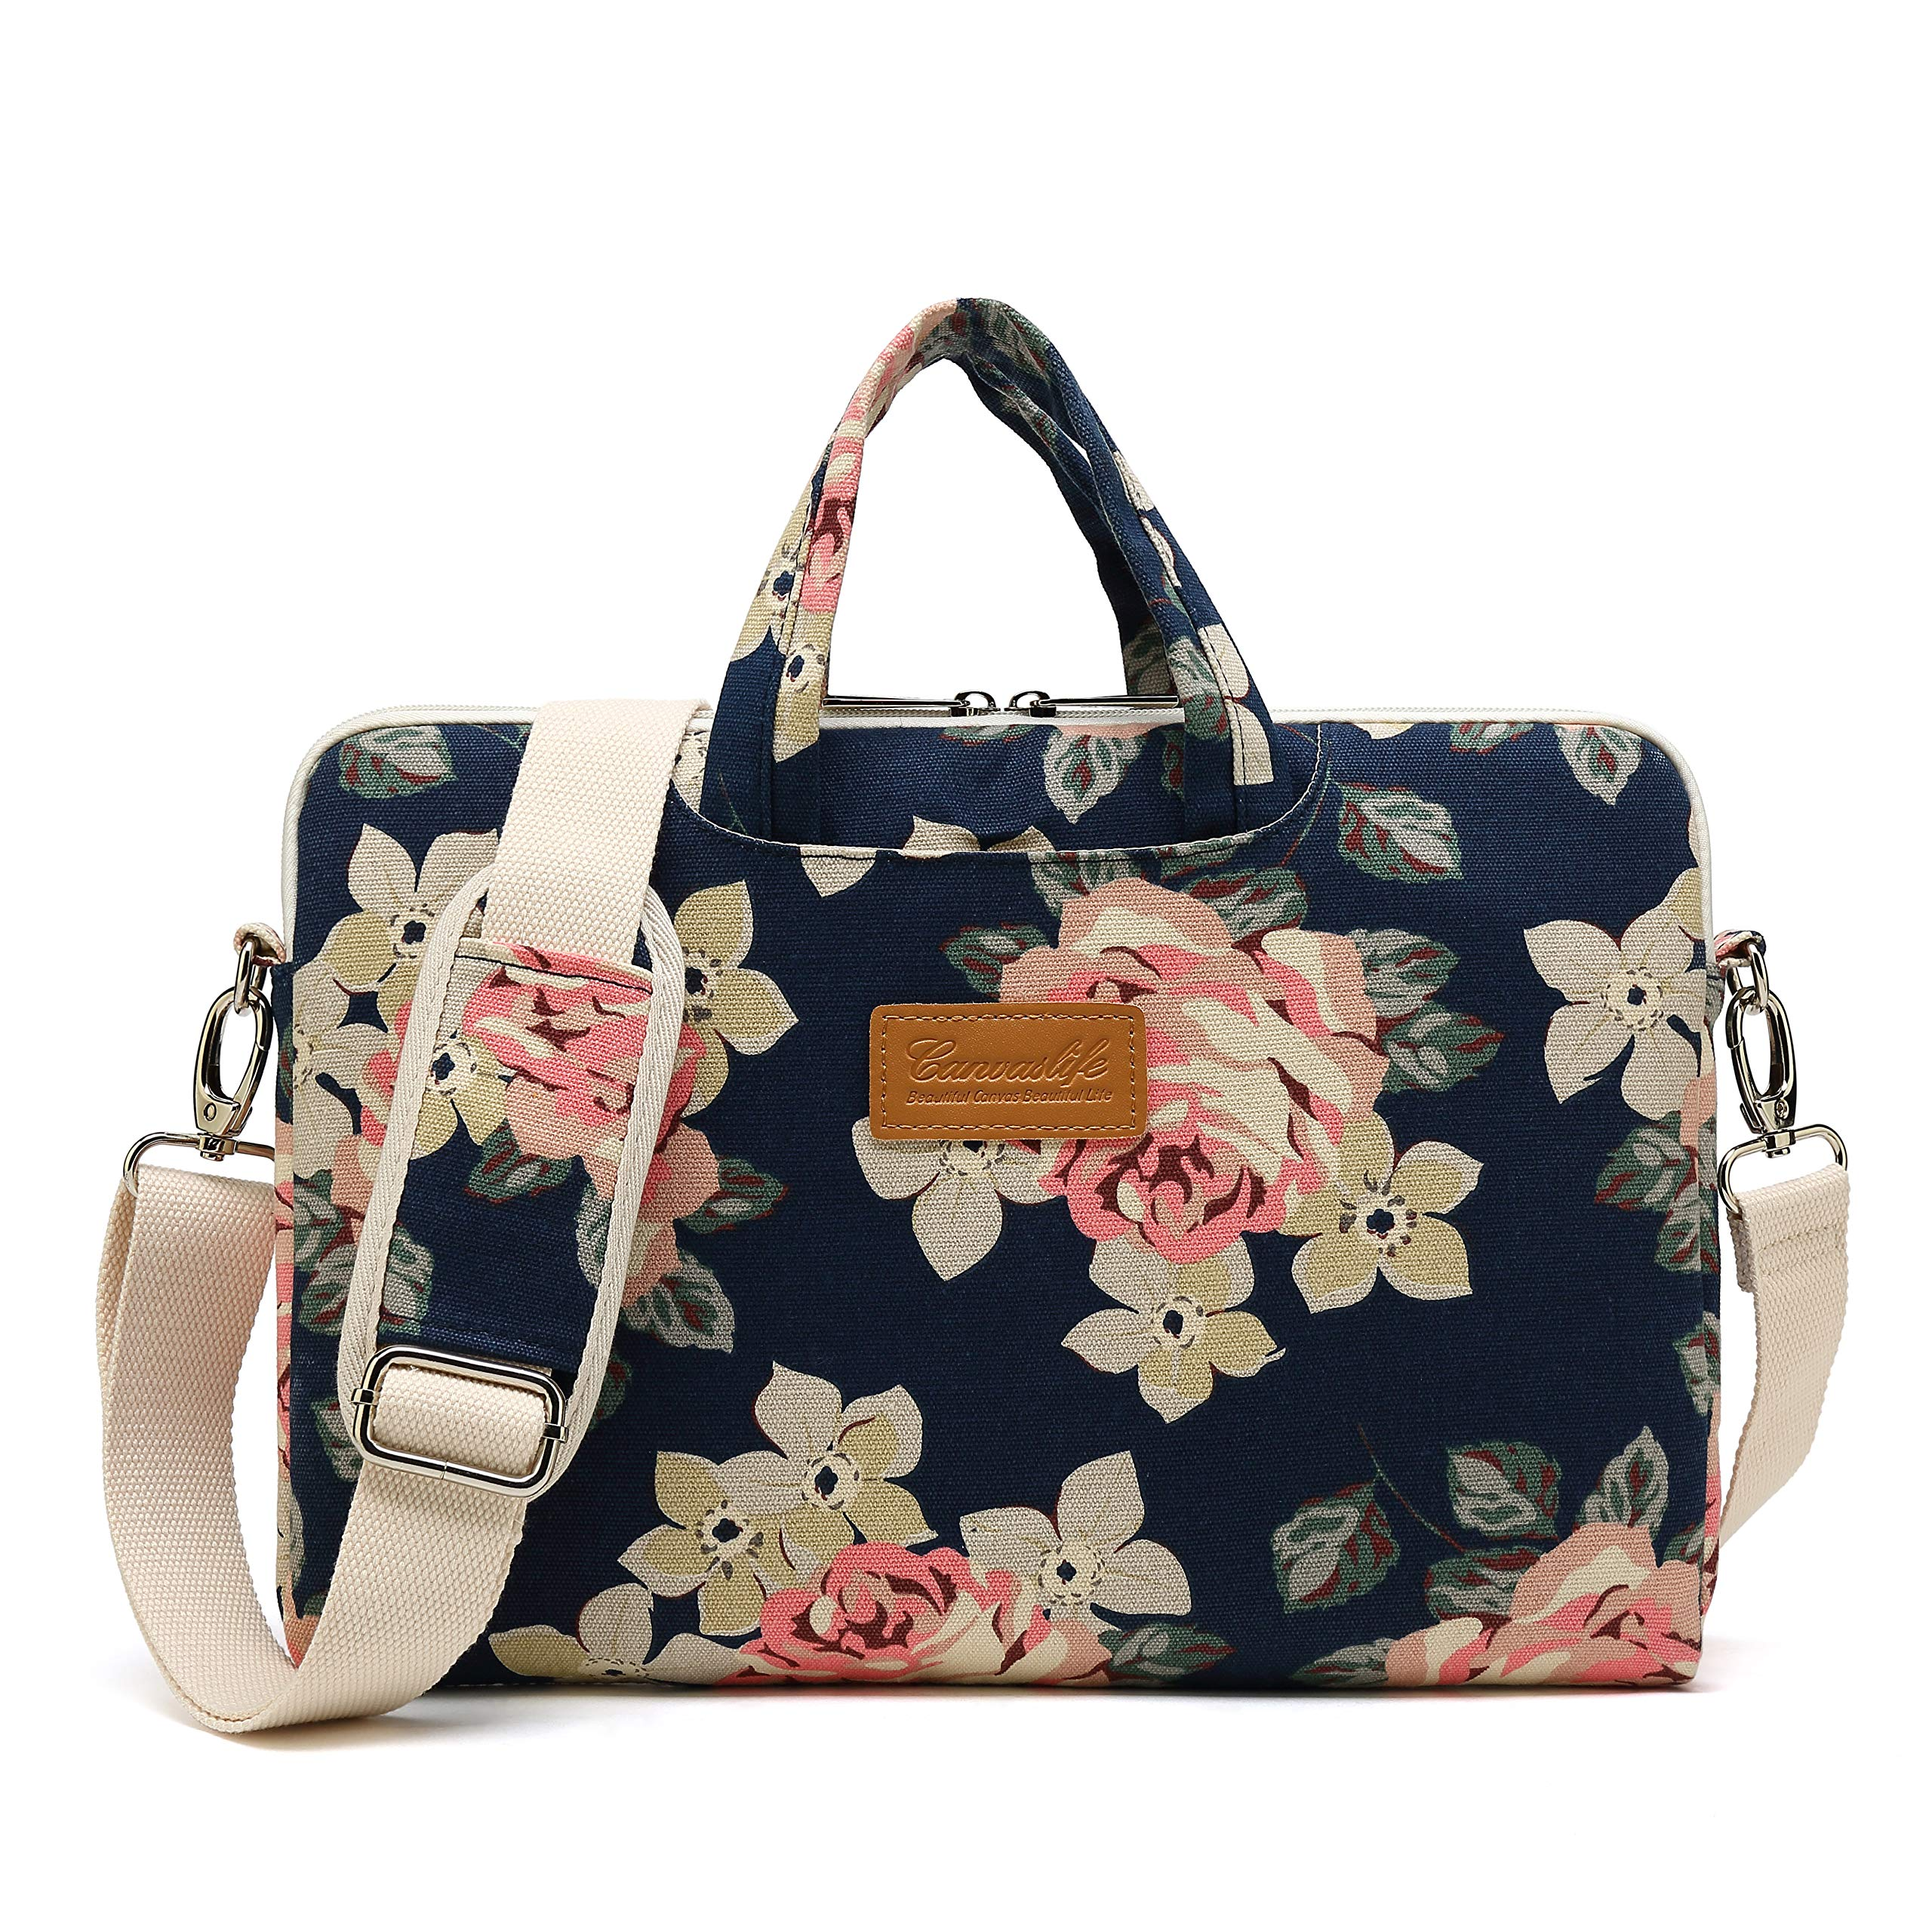 Canvaslife New white roses 15 inch Waterproof Laptop Shoulder Messenger Bag Case with Rebound Bubble Protection for 14 inch-15.6 inch Laptop 15 Case Bag